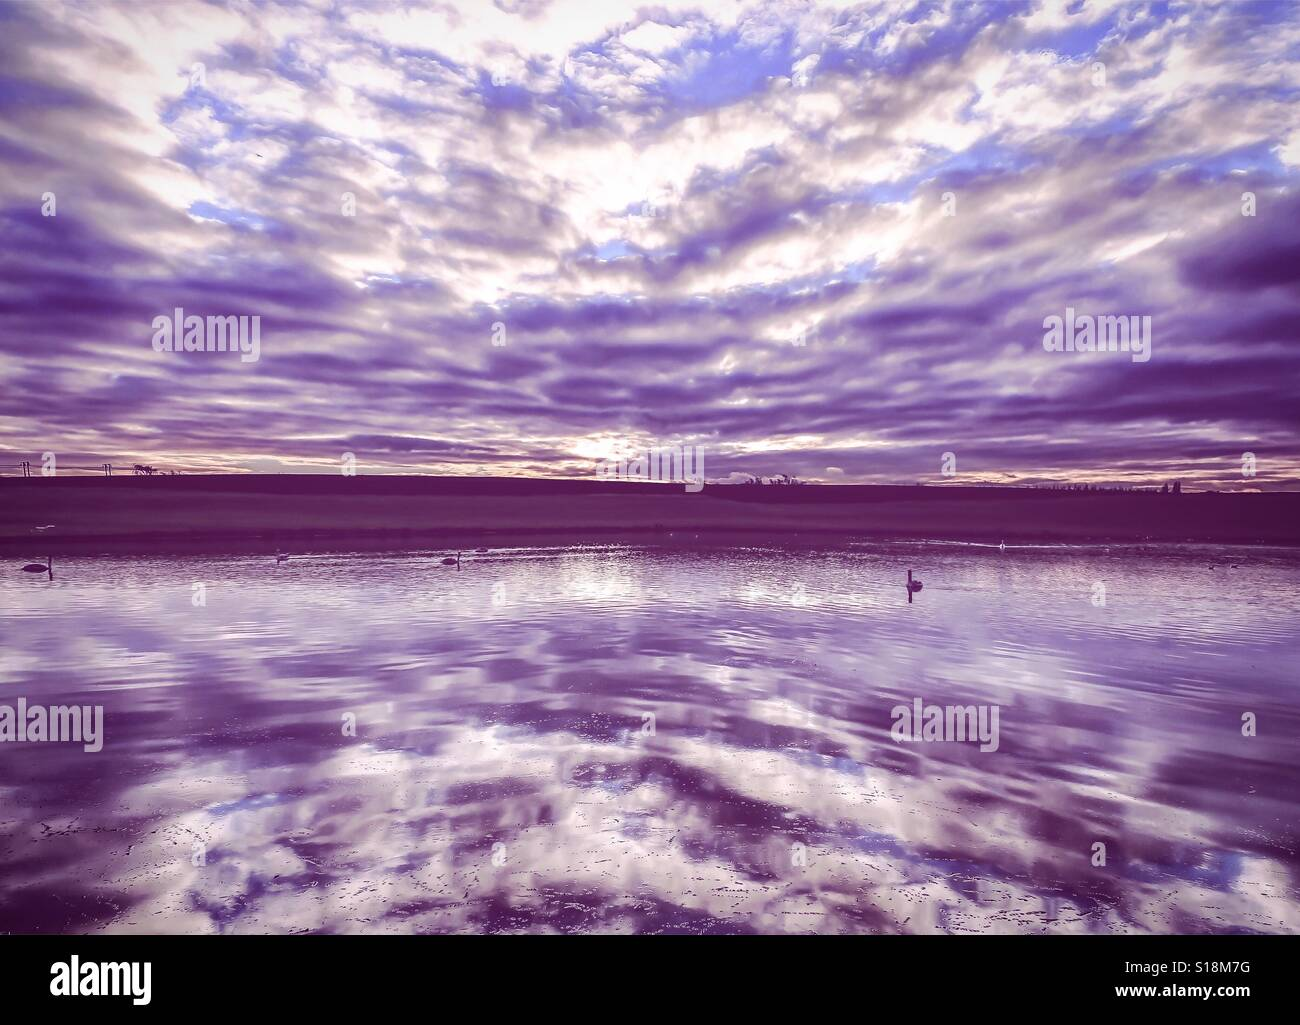 Reflections on water - Stock Image